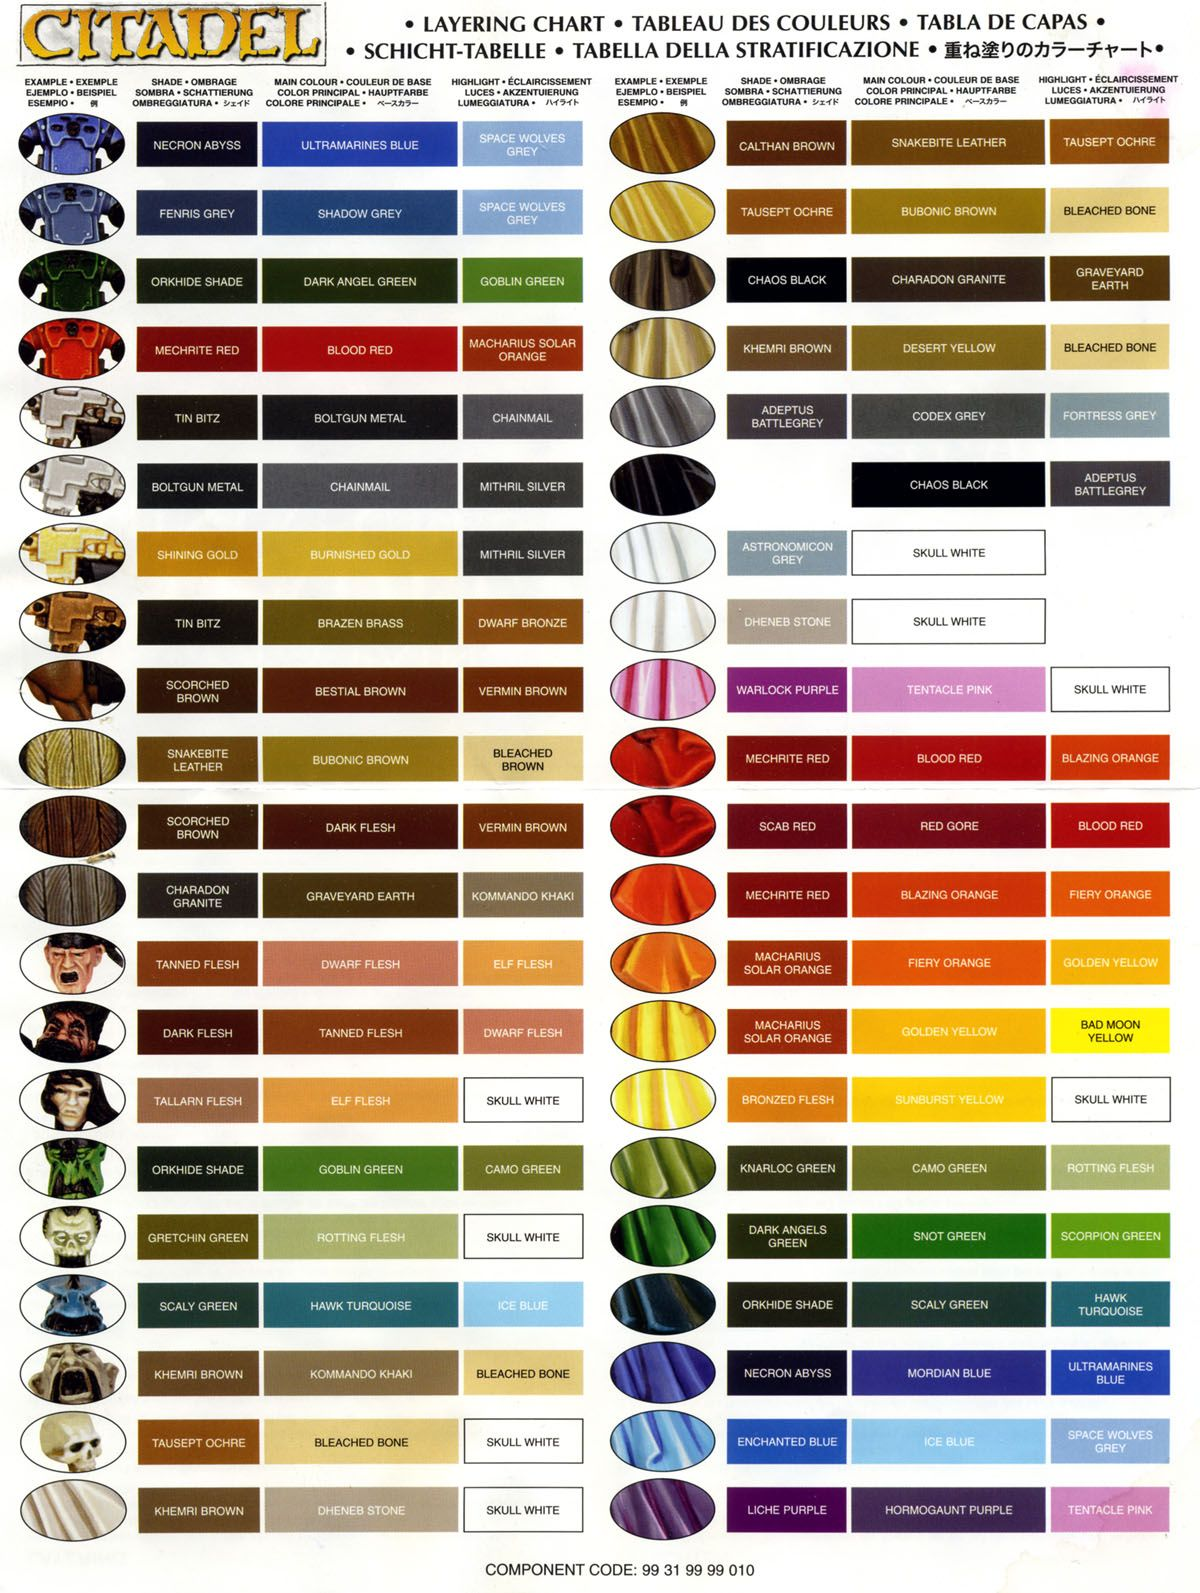 I Like To Keep Old Layering And Paint Charts Around For Inspiration Found This One On Pinterest Referencing The Pre 2017 Citadel Color Range